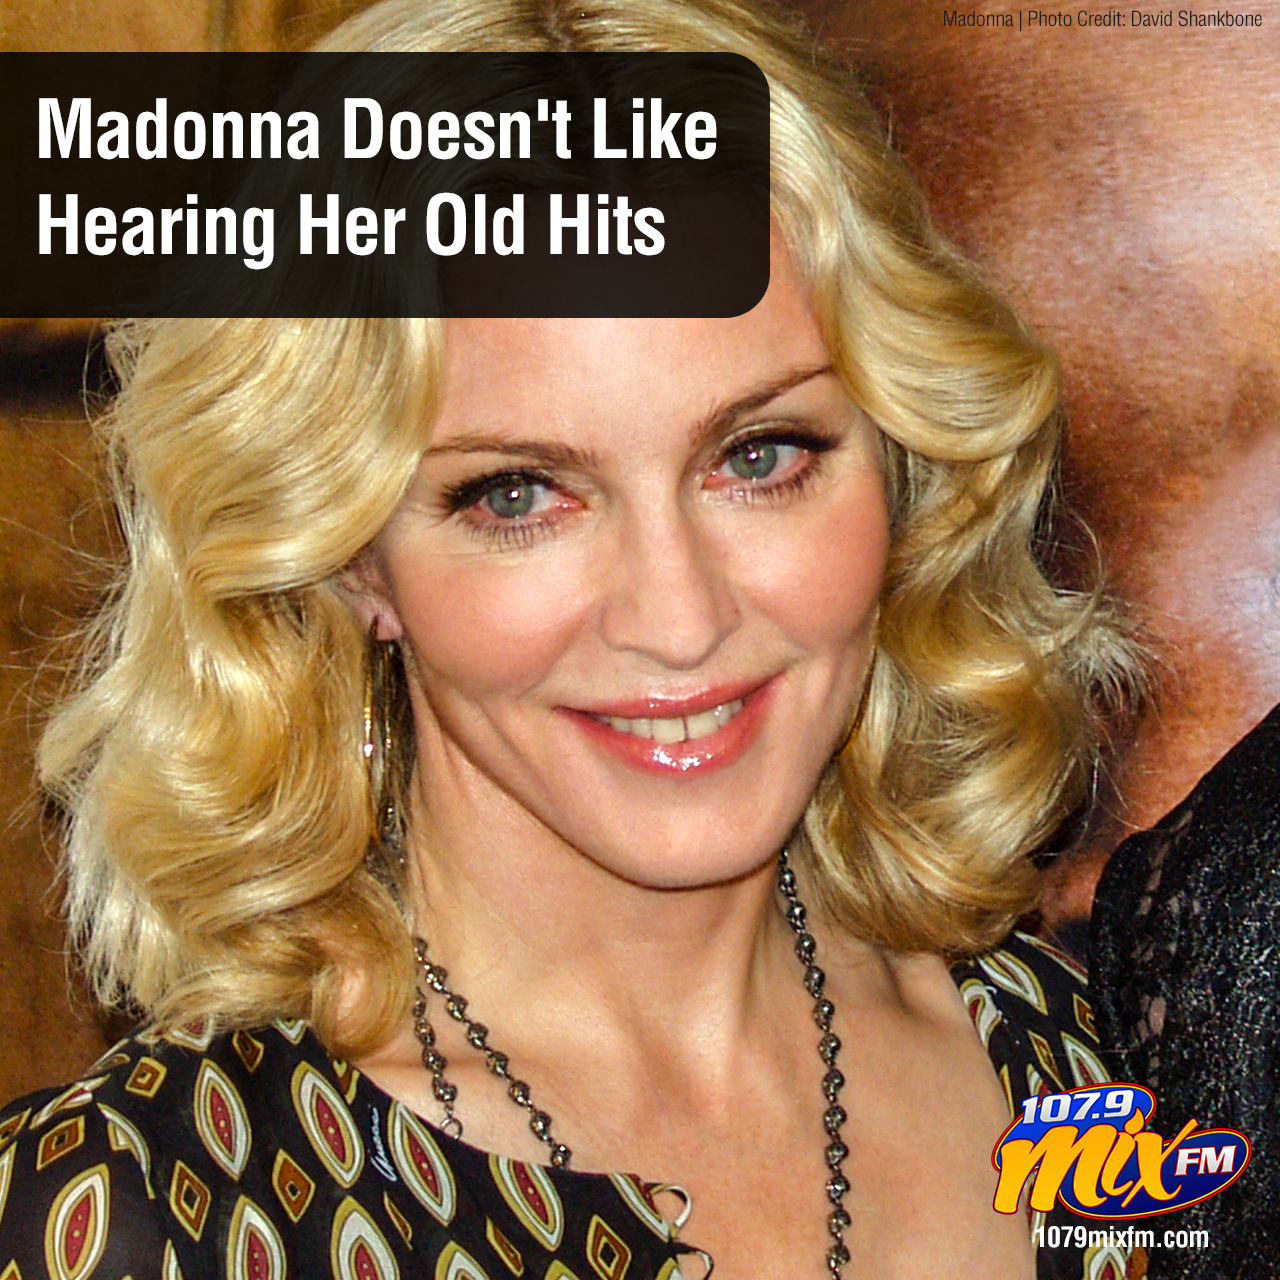 Madonna Doesn't Like Hearing Her Old Hits